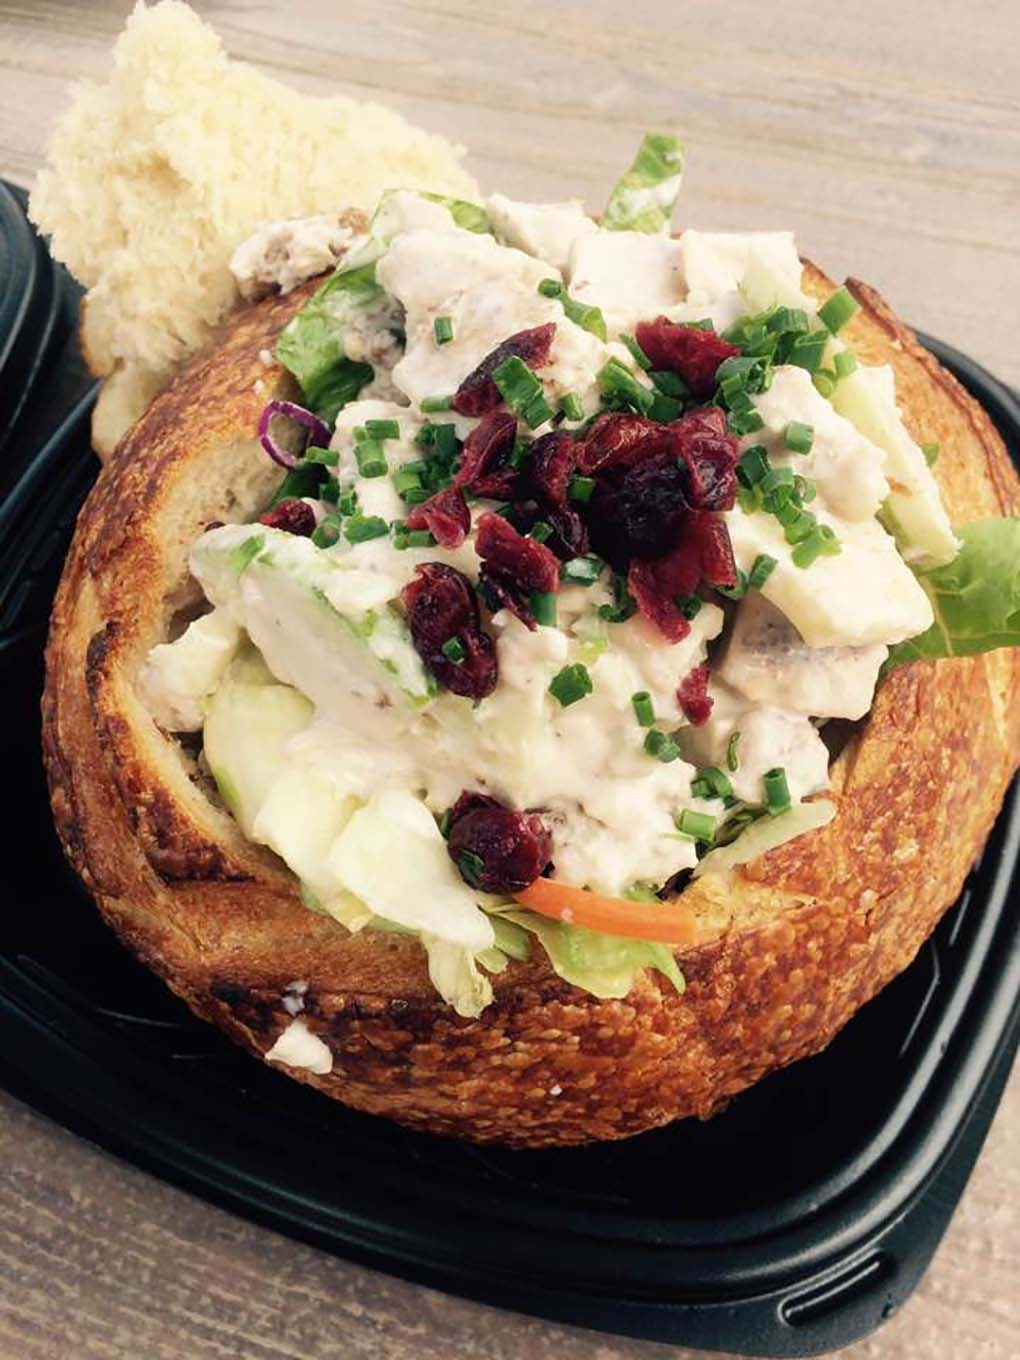 Chinese Chicken Salad in a bread bowl at Pacific Wharf Café in California Adventure Park